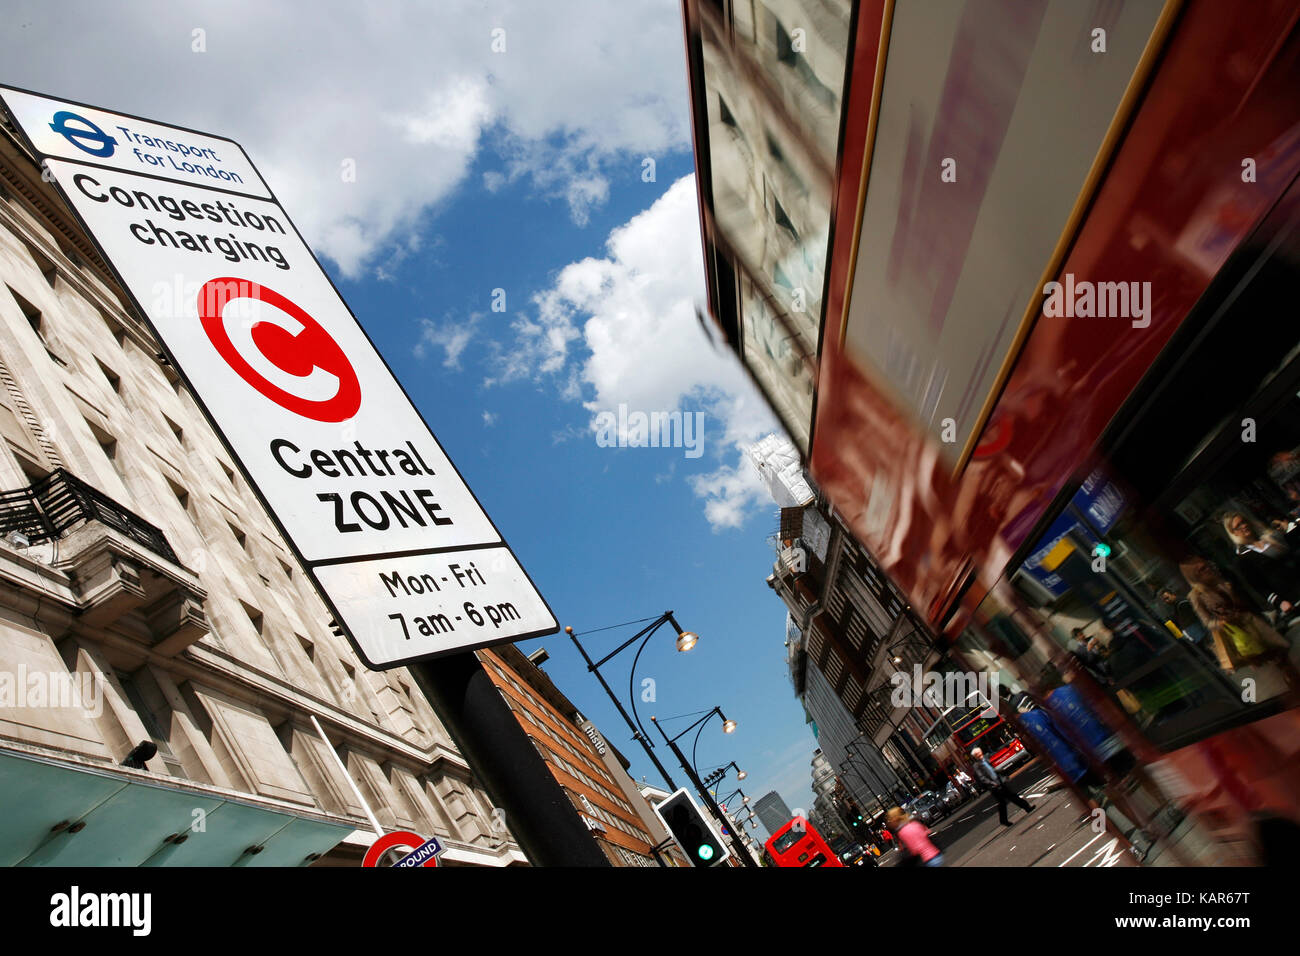 Congestion Charge Zone Sign, introduced 2003 to reduce congestion in central London. The standard charge is 11.50 - Stock Image